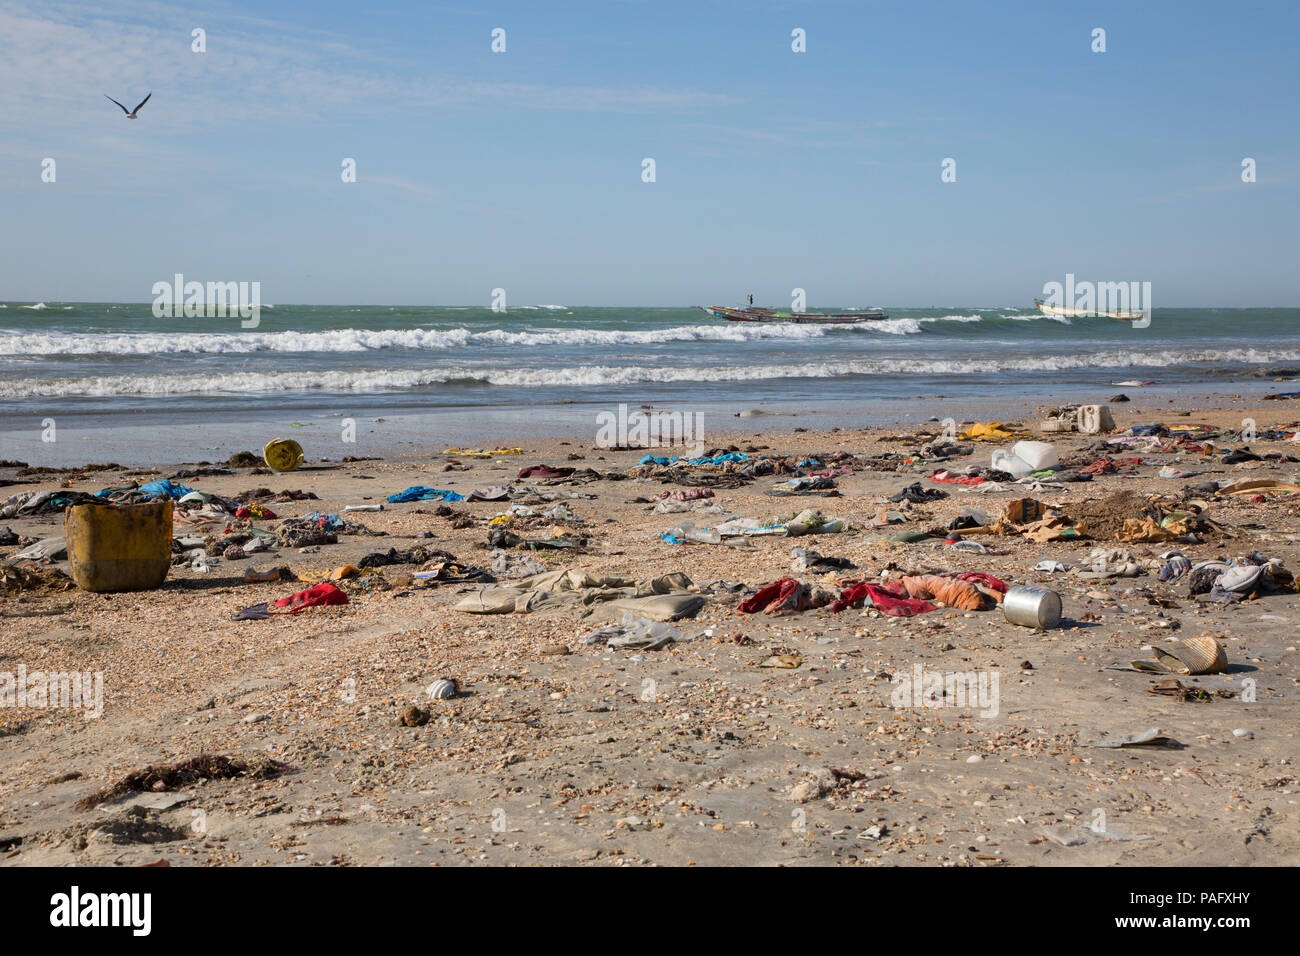 Beach littered with plastic waste and other rubbish, Tanji, The Gambia - Stock Image